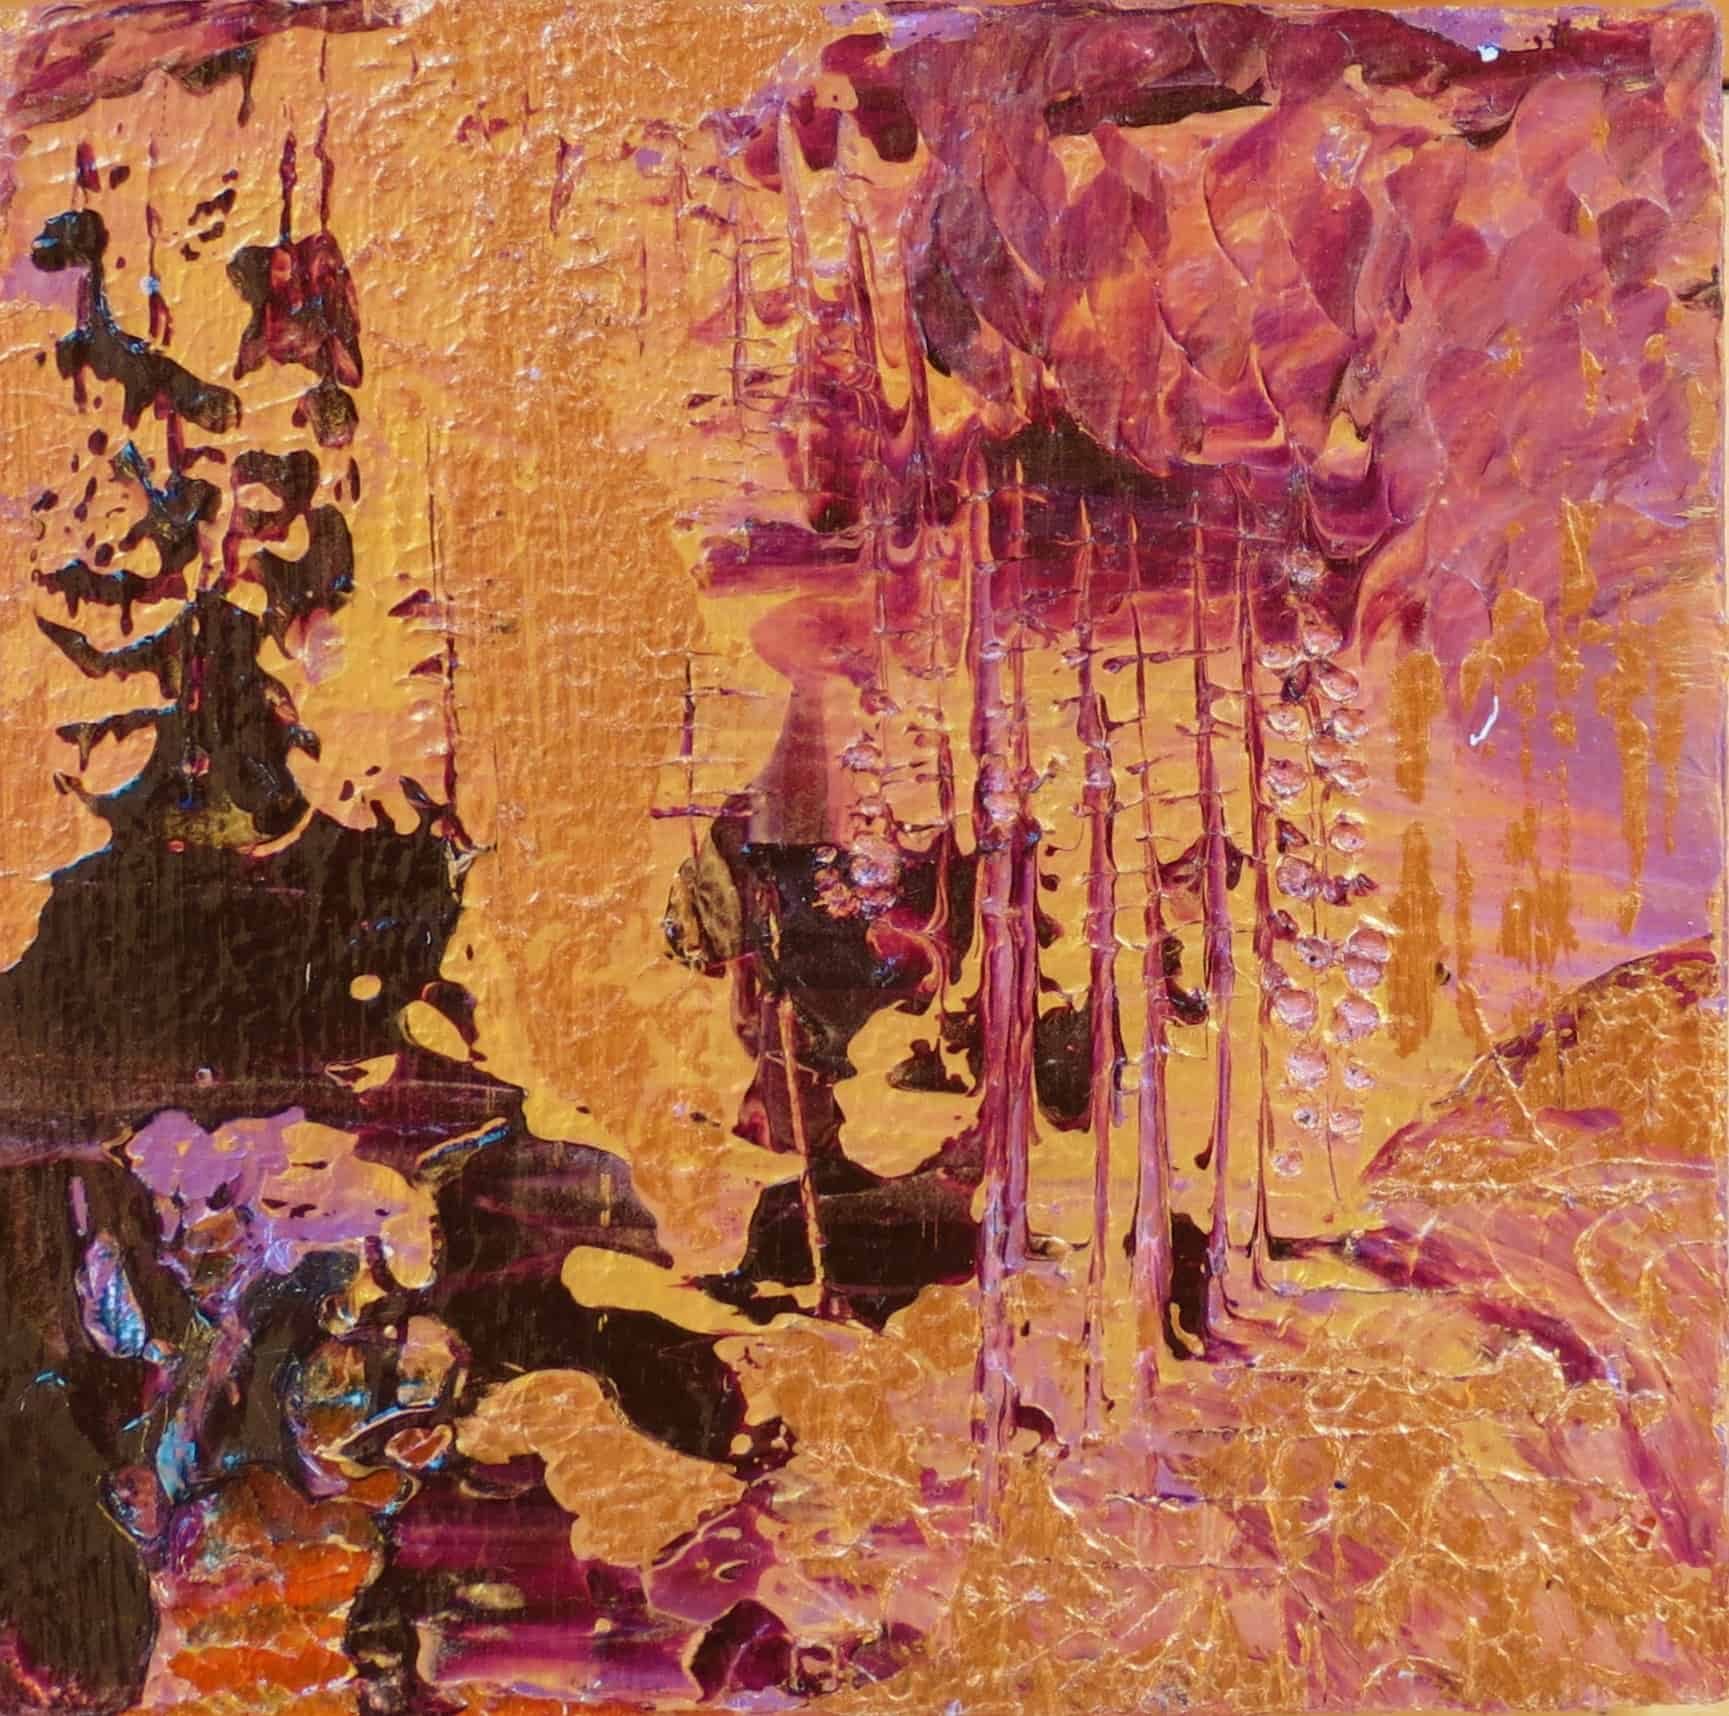 Purple and Gold (1 of 3) Acrylic on Pine Block